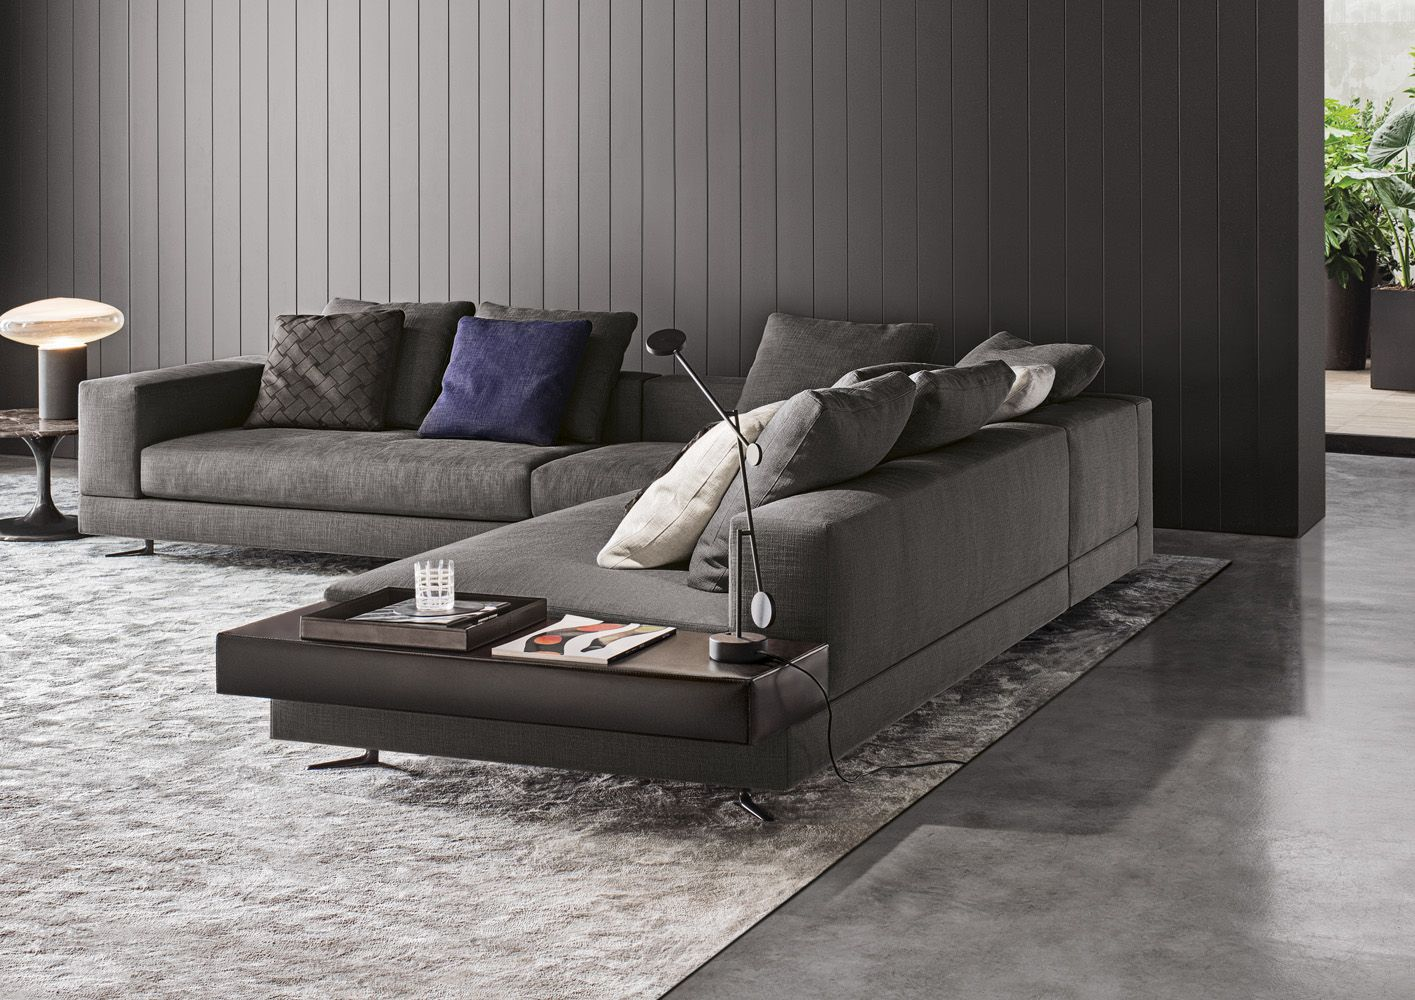 Delightful Minotti White Sectional With Attached Leather Table : Fabric : 06 Elephant  Color: Pitti ; Leather Table Name: Pelle Extra Color 949 Visone